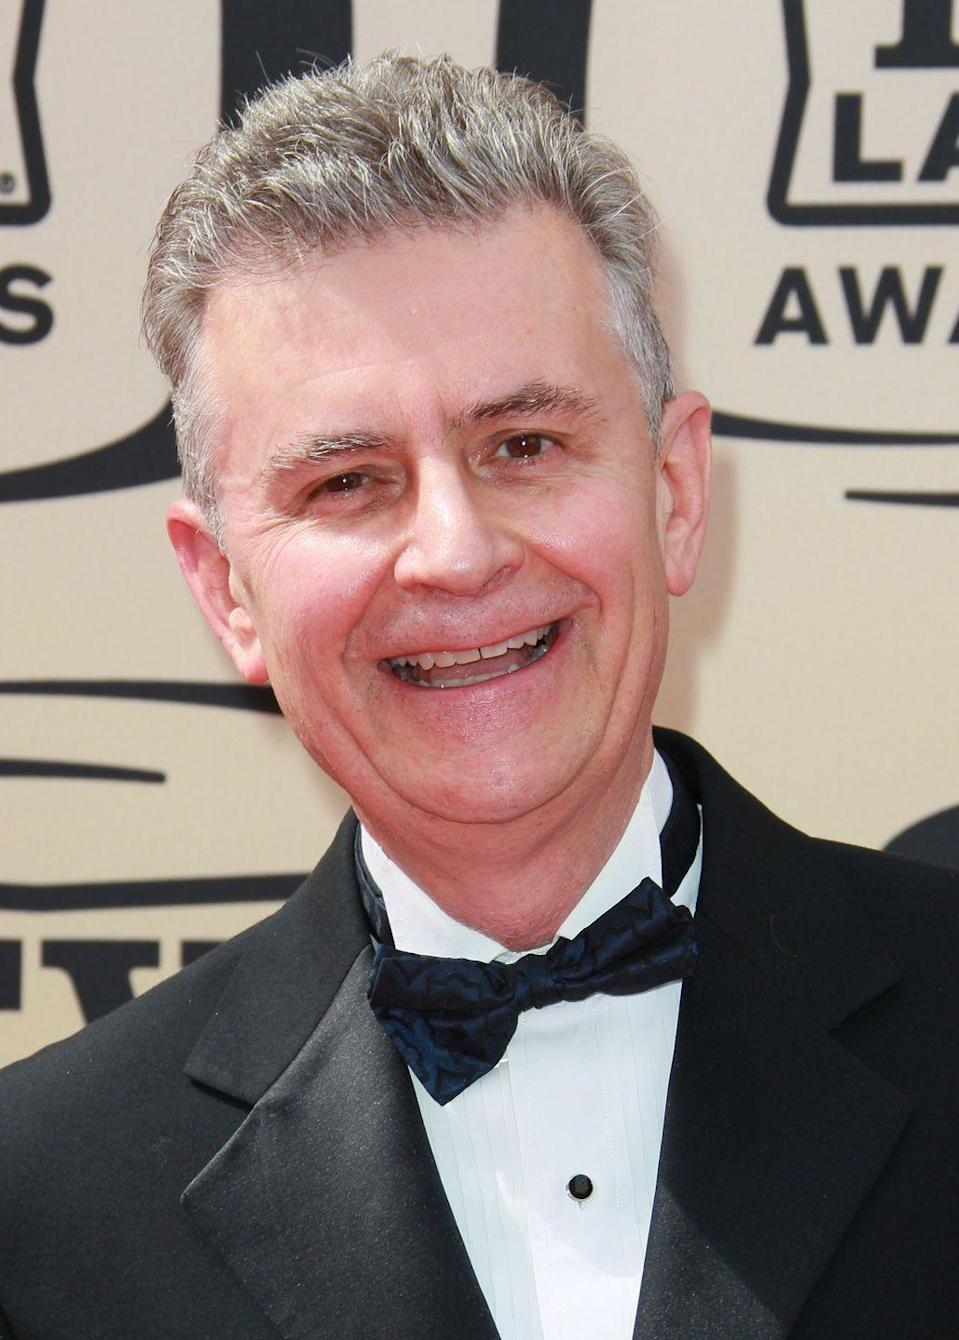 <p>Unlike most famous-actors-turned-politicians, Fred Grandy's career began in politics as a member of Congressman Wiley Mayne's team. Then Grandy landed a part on <em>The Love Boat</em> as Gopher and acting became his focus for all nine seasons of the show. In 1987, the actor decided to make a political comeback by running for Congress as an Iowa representative. Grandy came out on top and served in the House until 1995. </p>